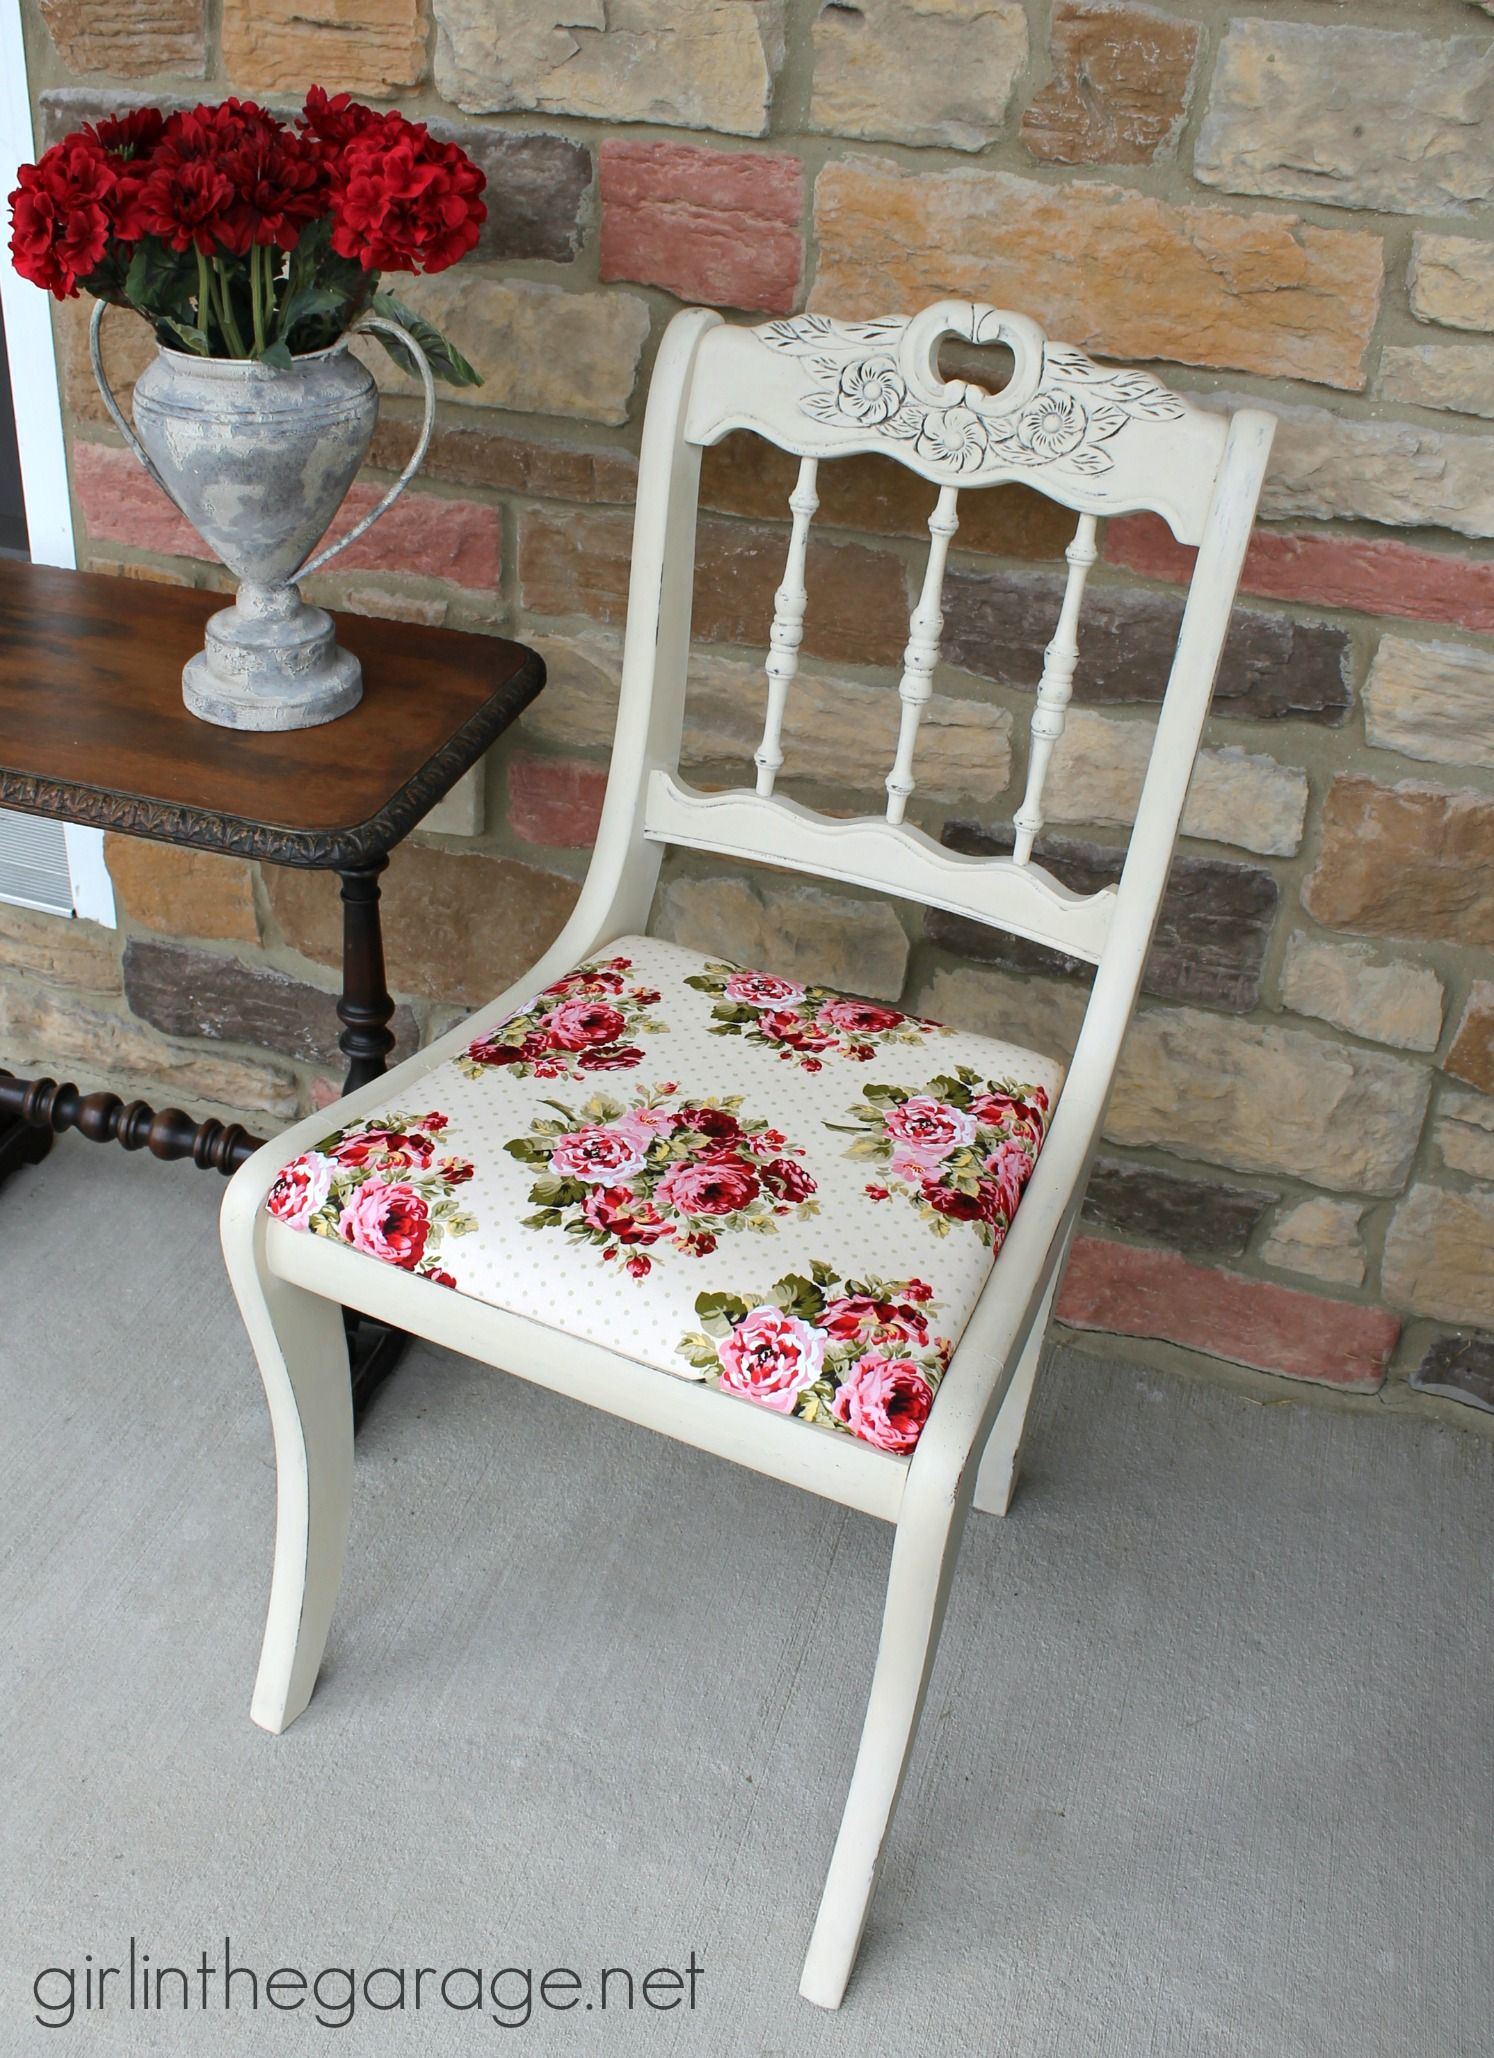 Shabby Chic Chair Makeover Shabby Chic Chairs Shabby Chic Decor Shabby Chic Furniture